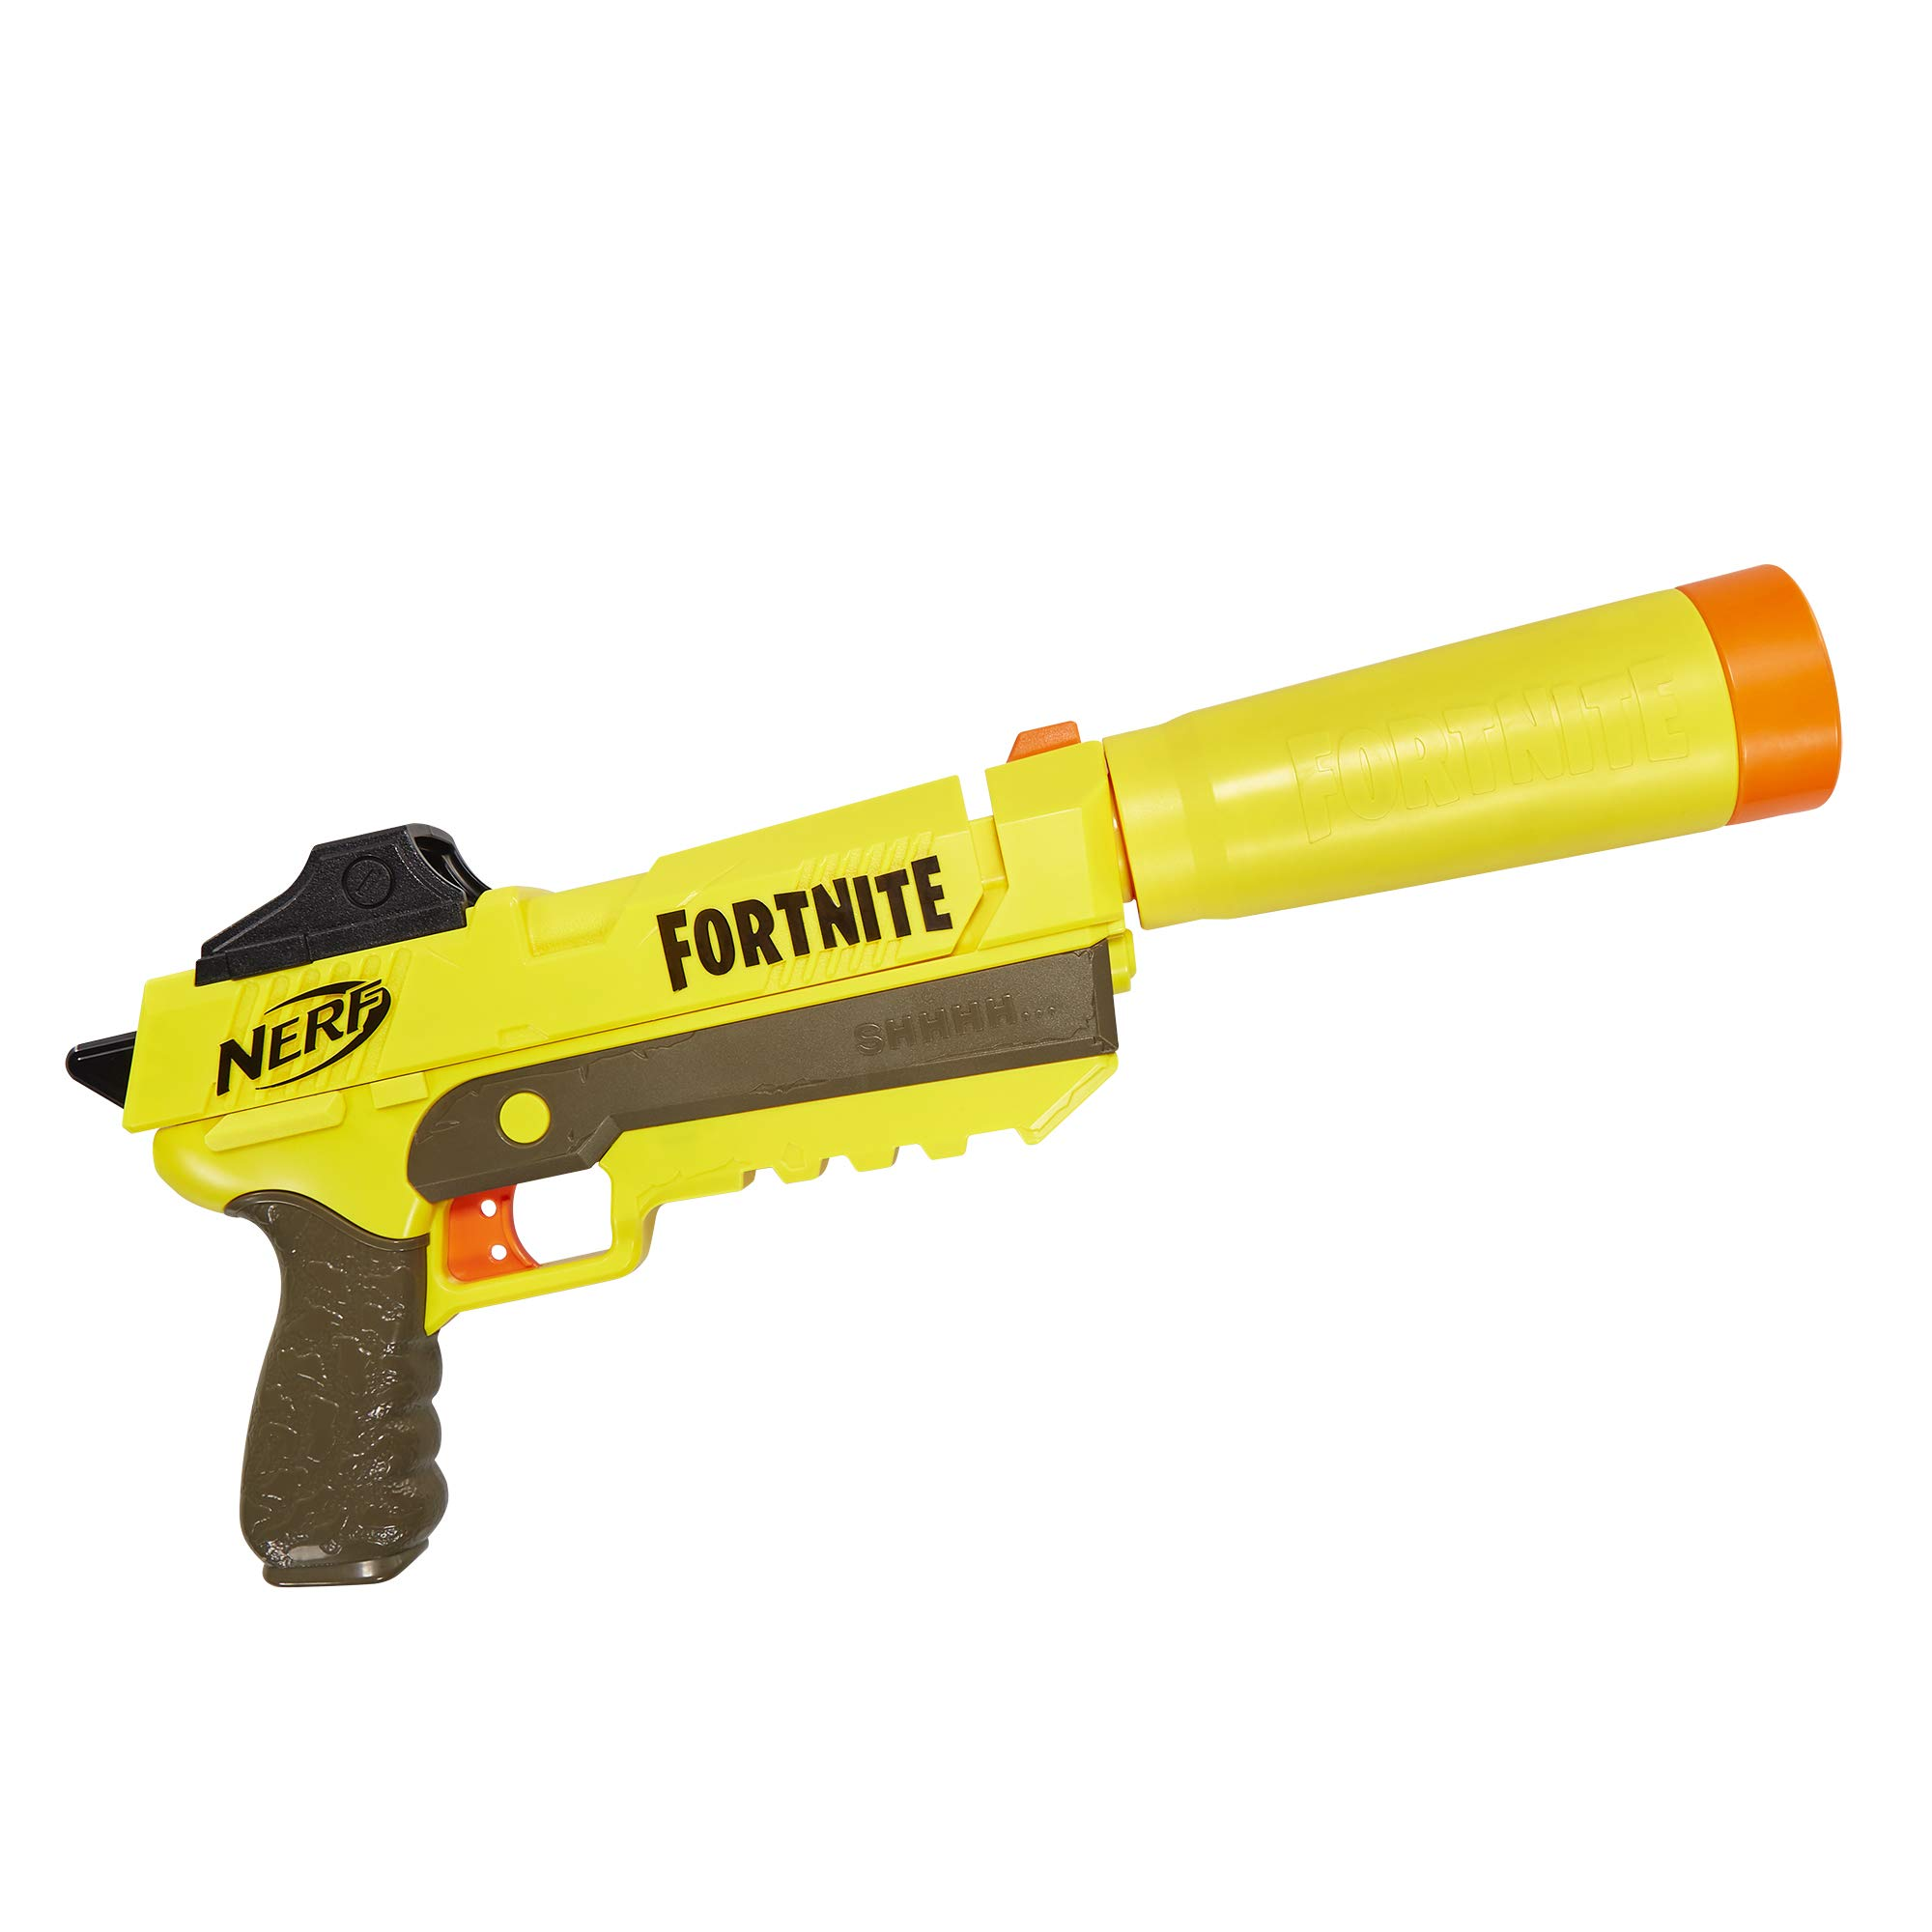 Nerf Fortnite B07M6TG3KK/